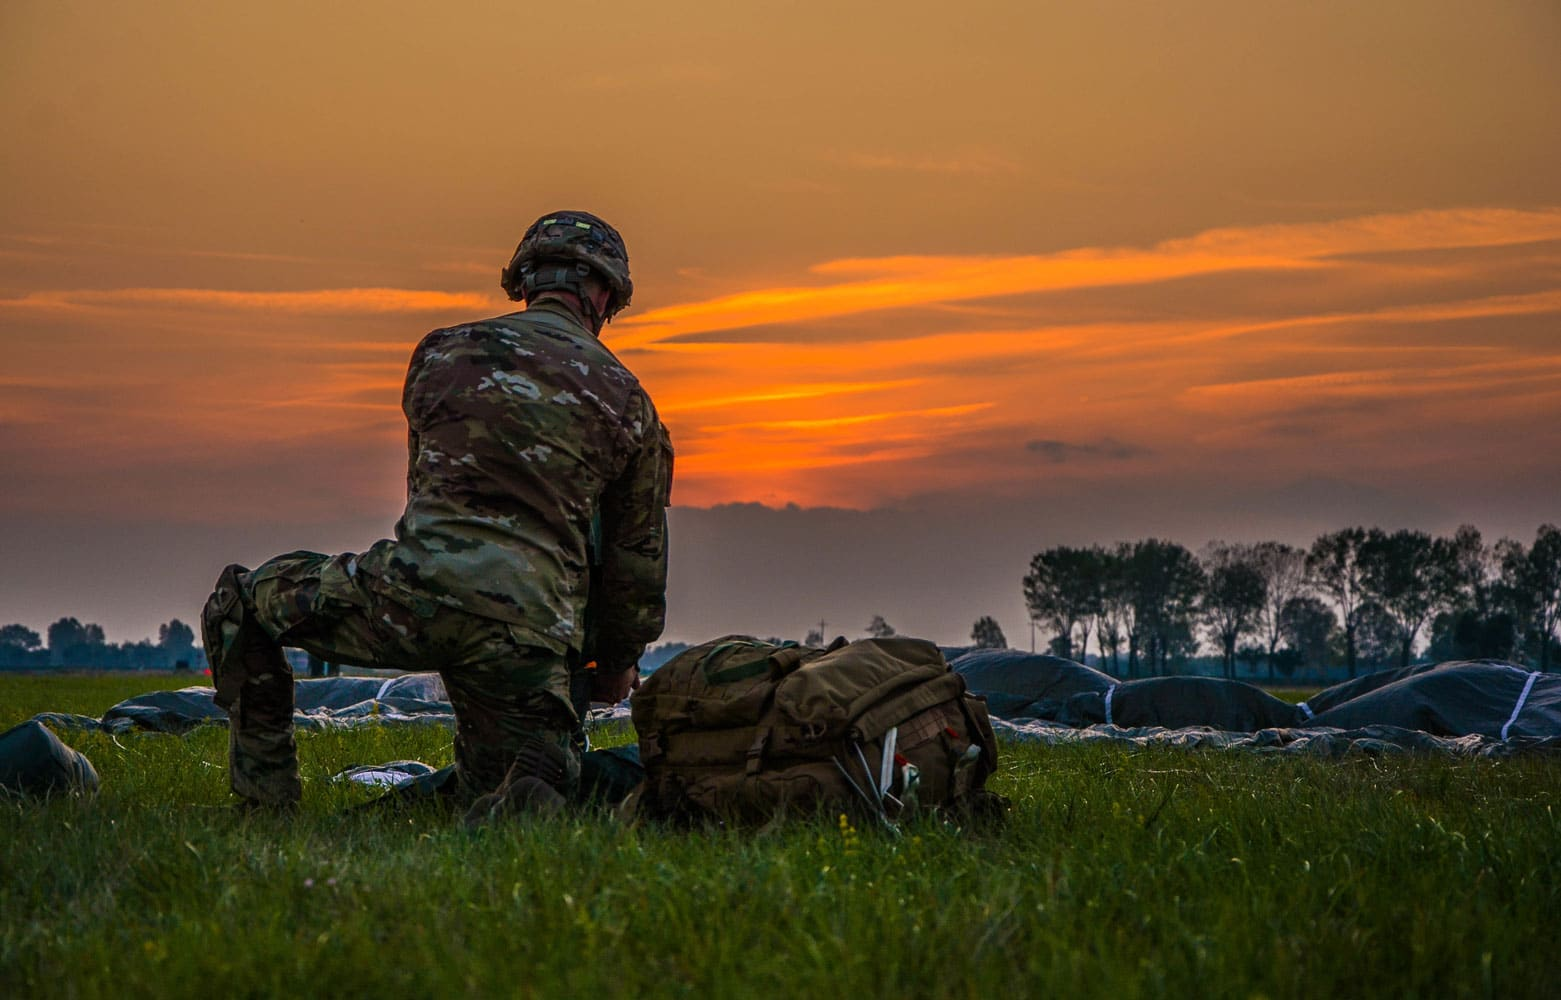 The setting sun highlights a paratrooper from the 173rd Airborne brigade as he collects his parachute after landing.